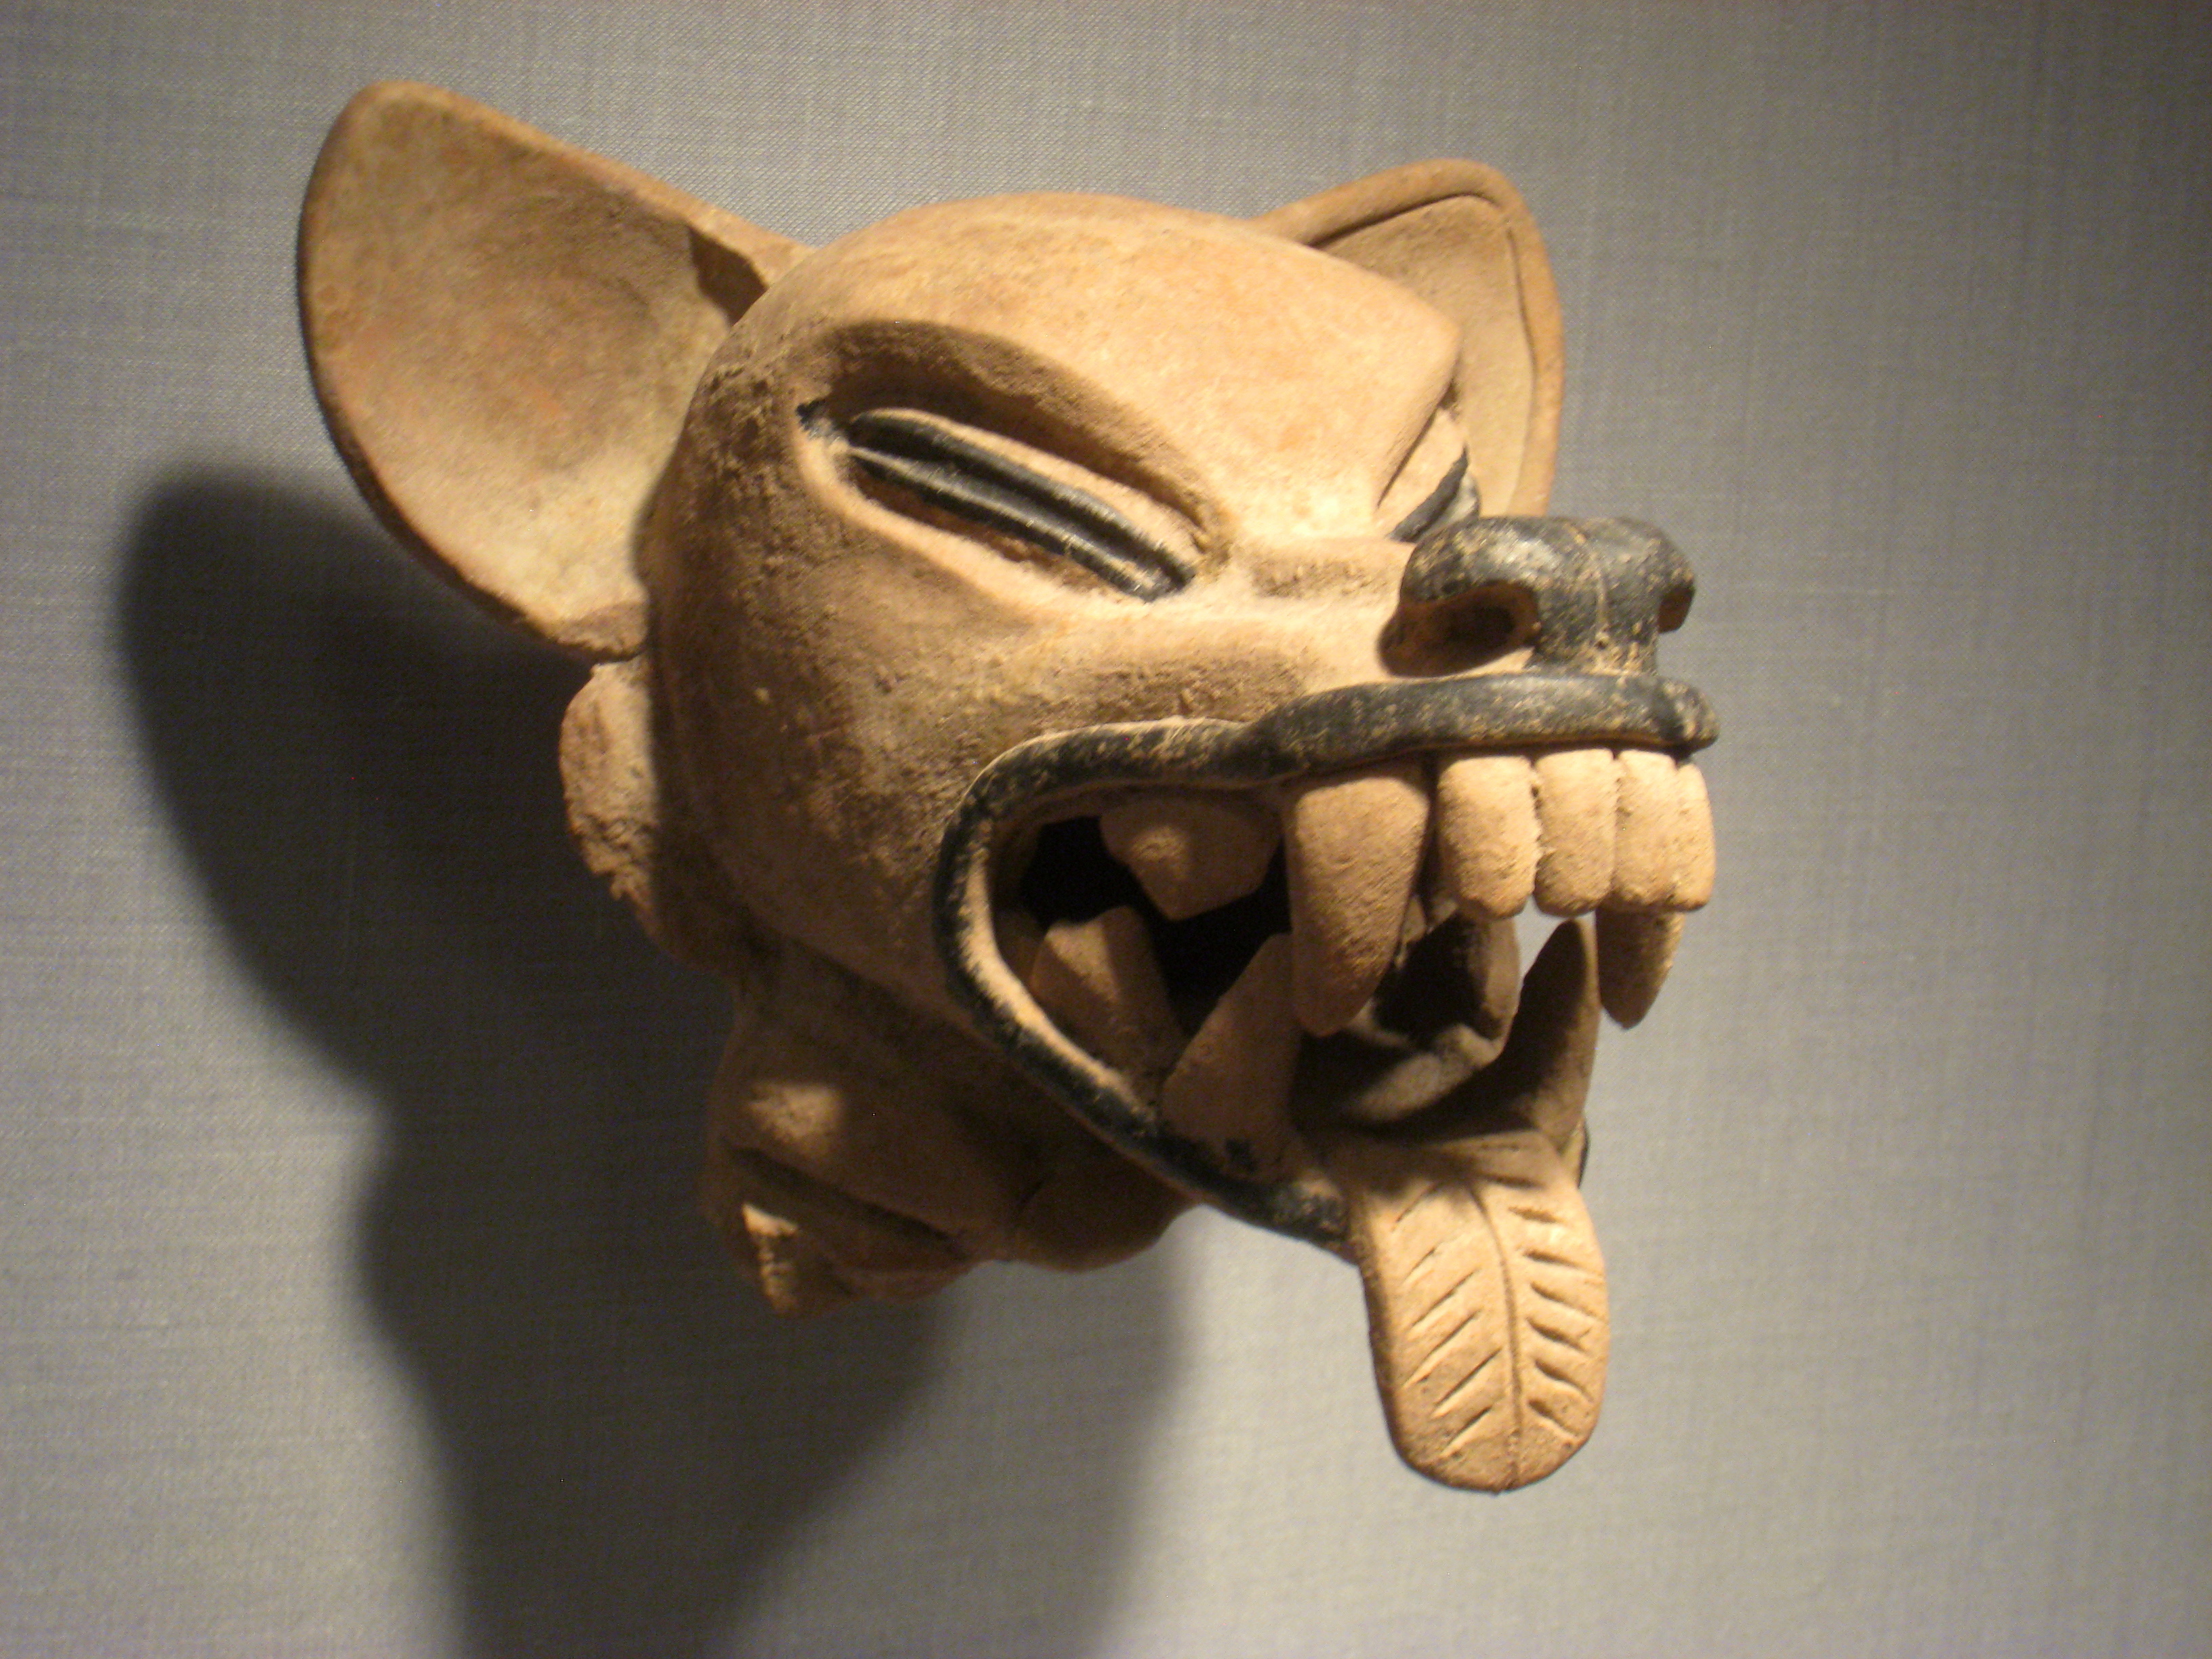 Animal Head, Mexico, State of Veracruz, Remojada culture, Classic Period, 300-600 AD, ceramic, Pre-Columbian collection, Worcester Art Museum - IMG 7656.JPG